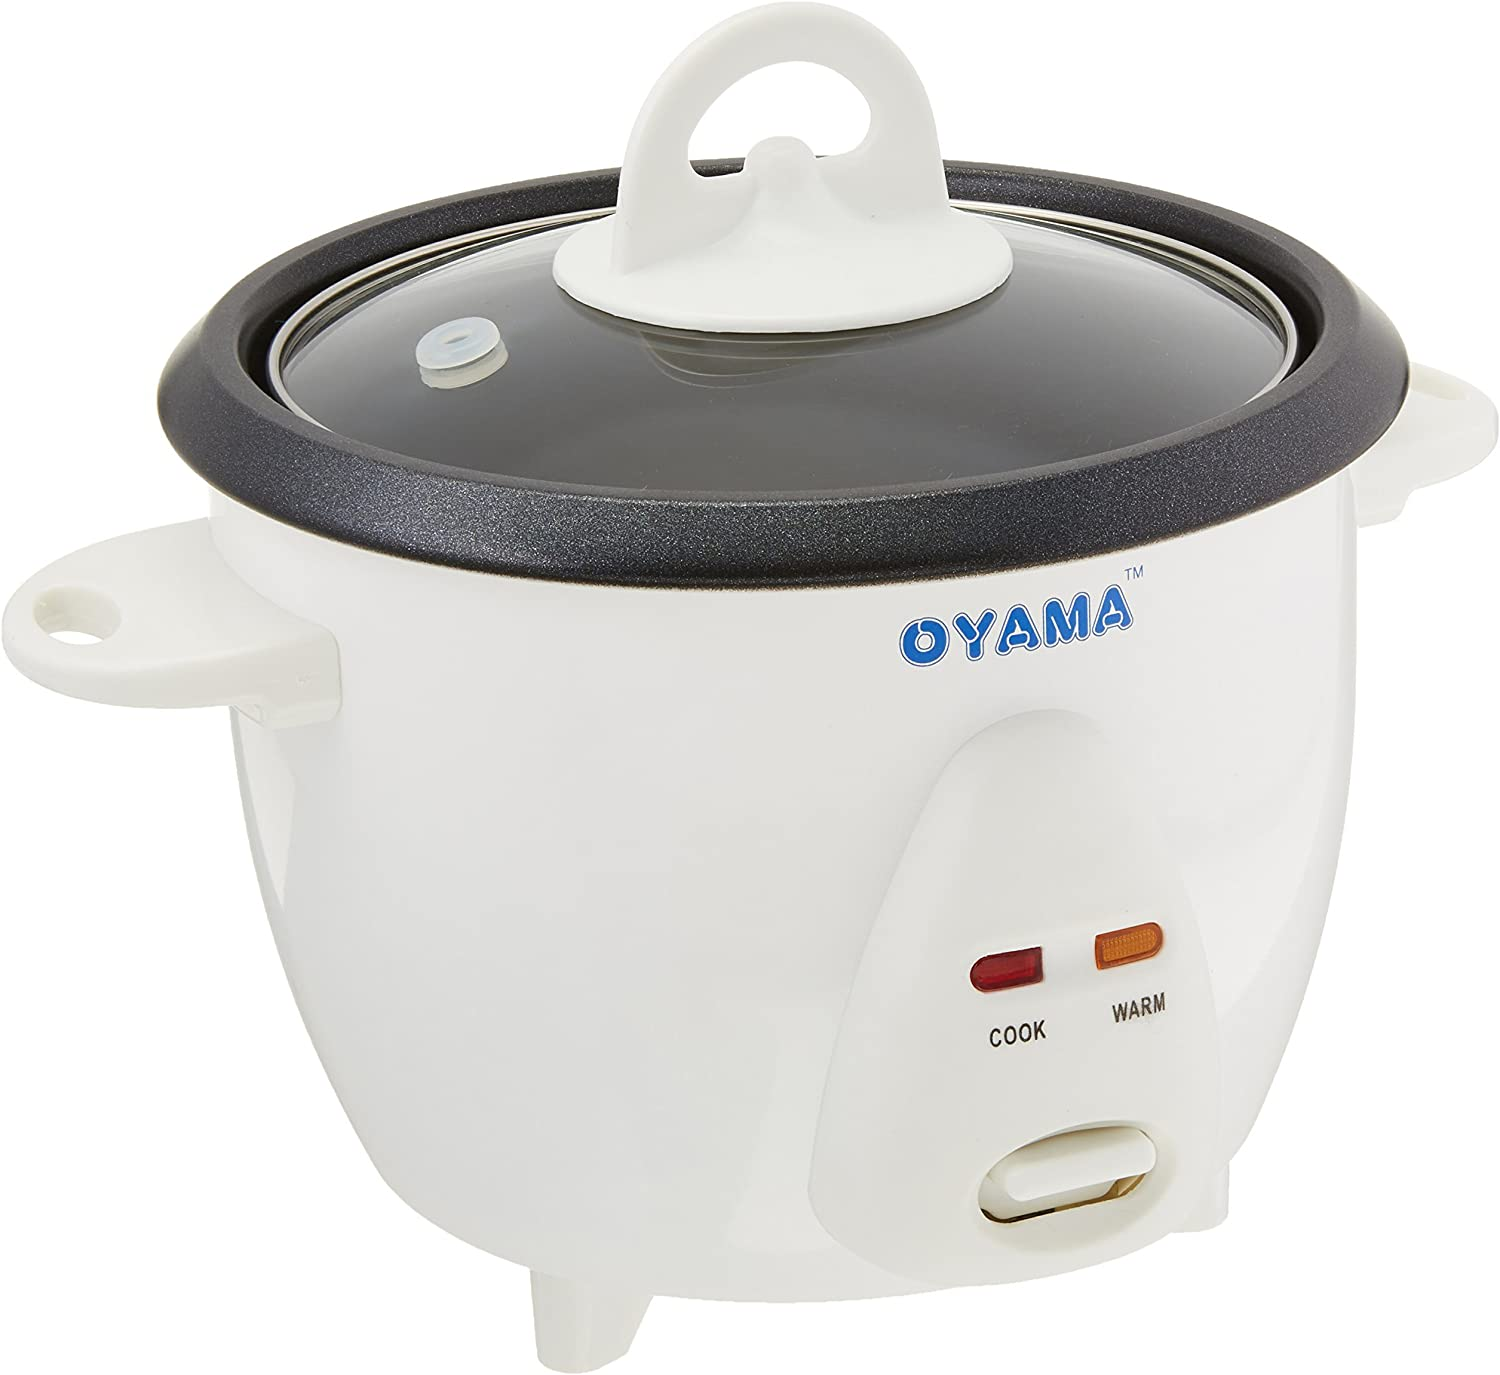 Oyama 3 Cup (uncooked rice) Traditional Rice Cooker-Warmer